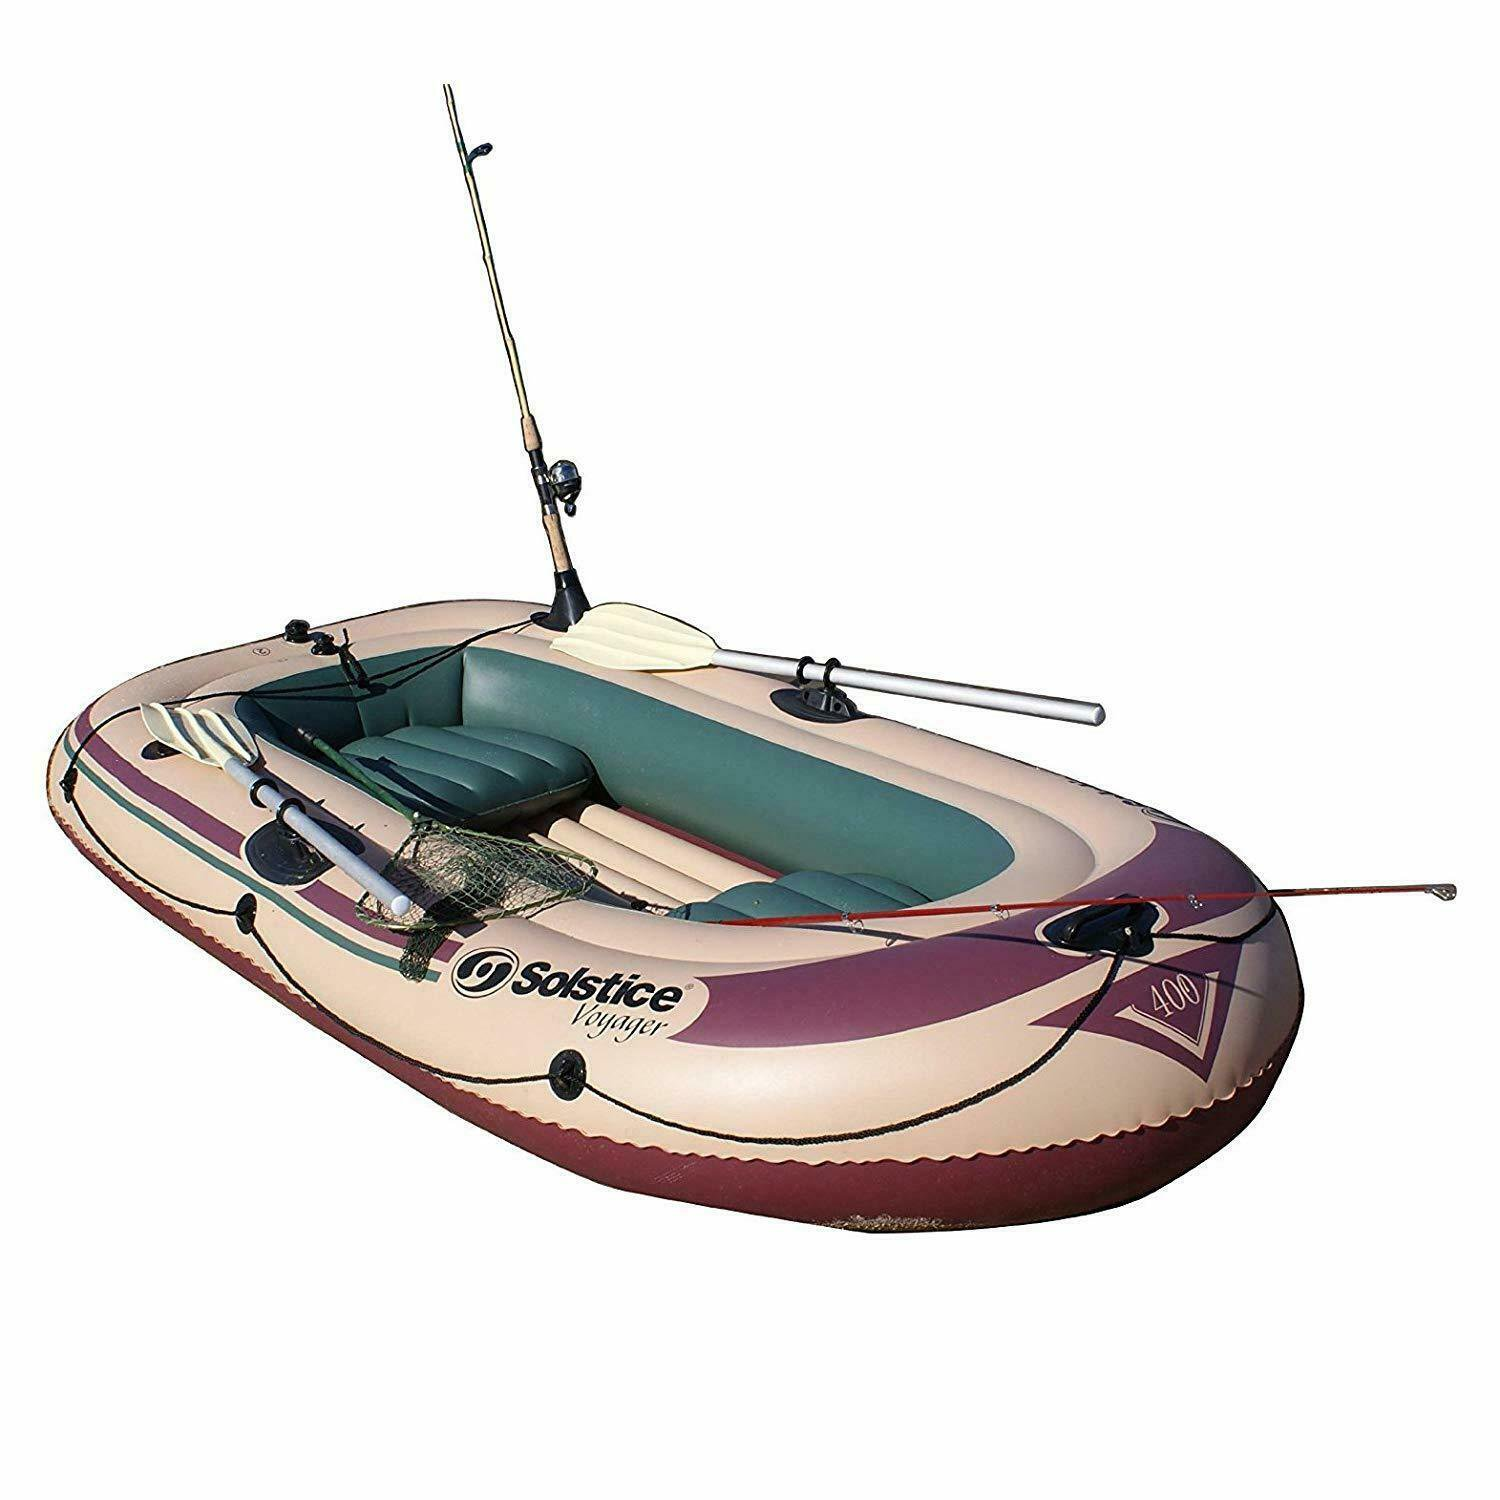 Fathers Dad Day Voyager 30400 Inflatable 4 Person Fishing Leisure Boat Raft